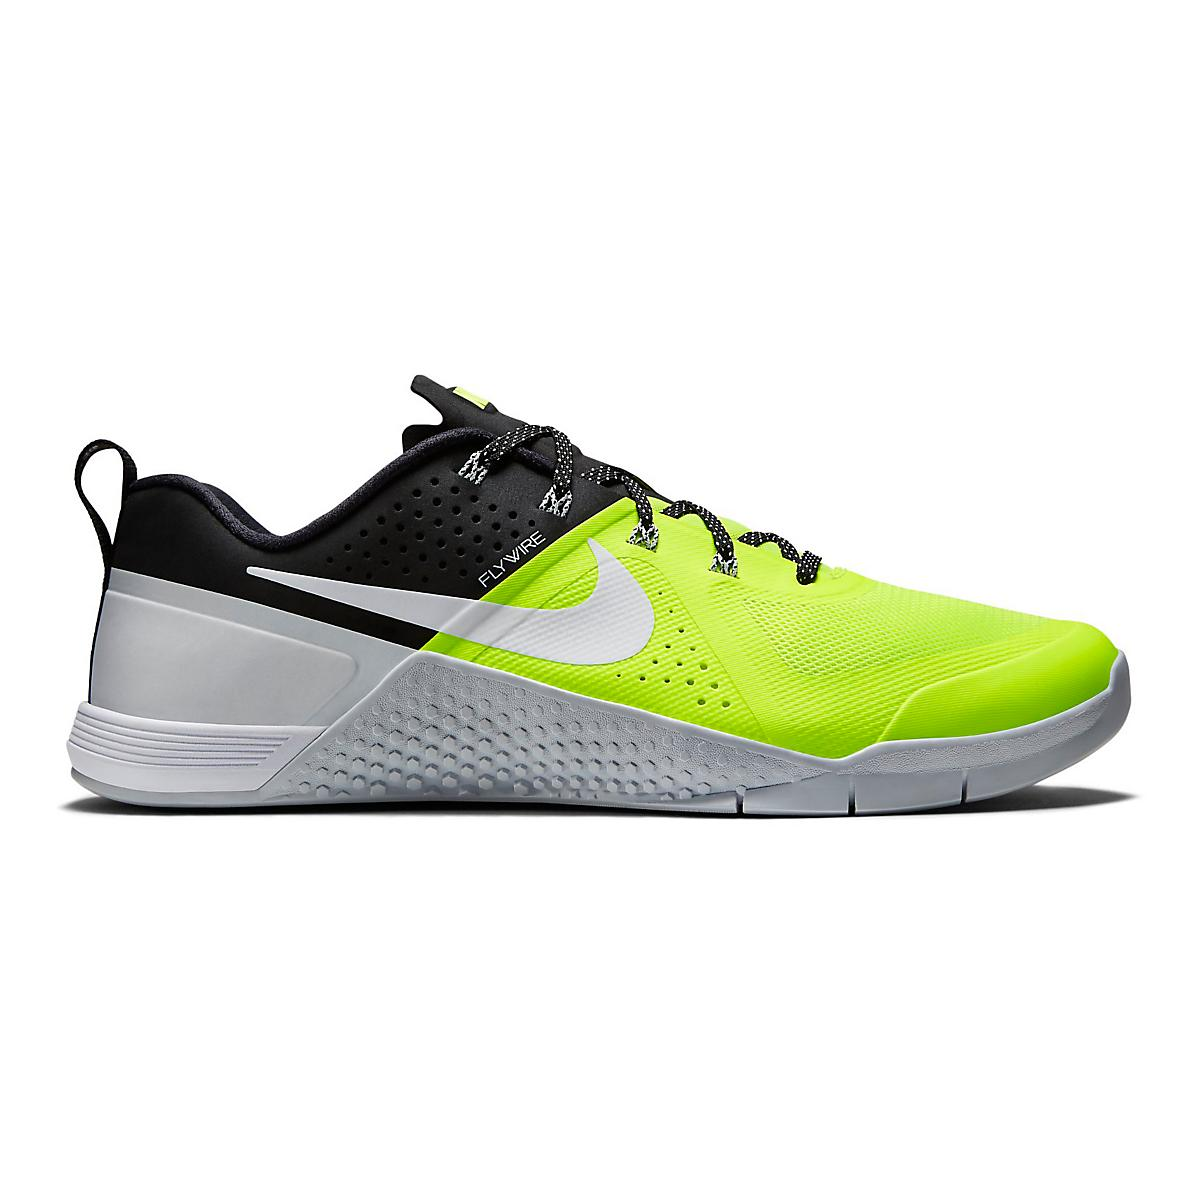 3ecc876d16f6 Mens Nike MetCon 1 Cross Training Shoe at Road Runner Sports